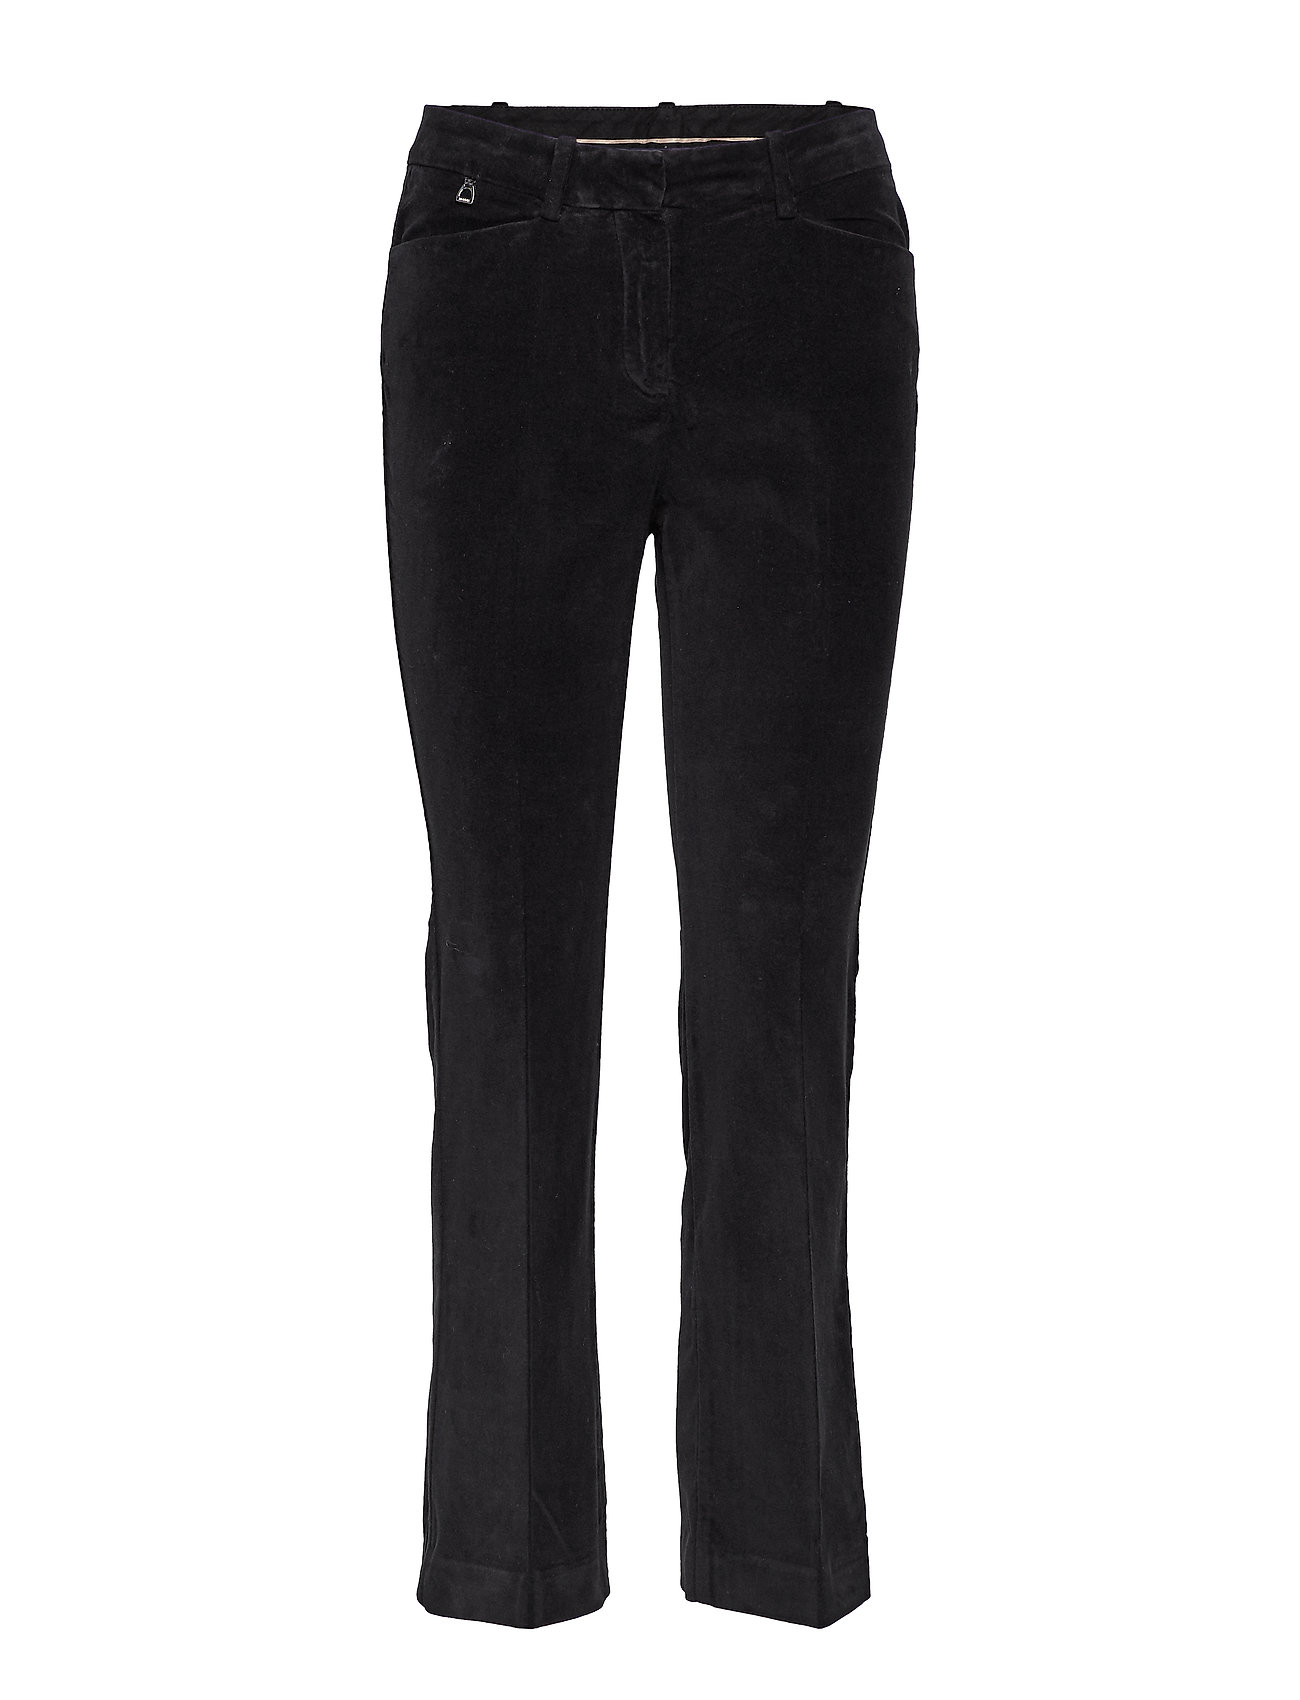 Morris Lady Anais Noir Trousers - BLACK